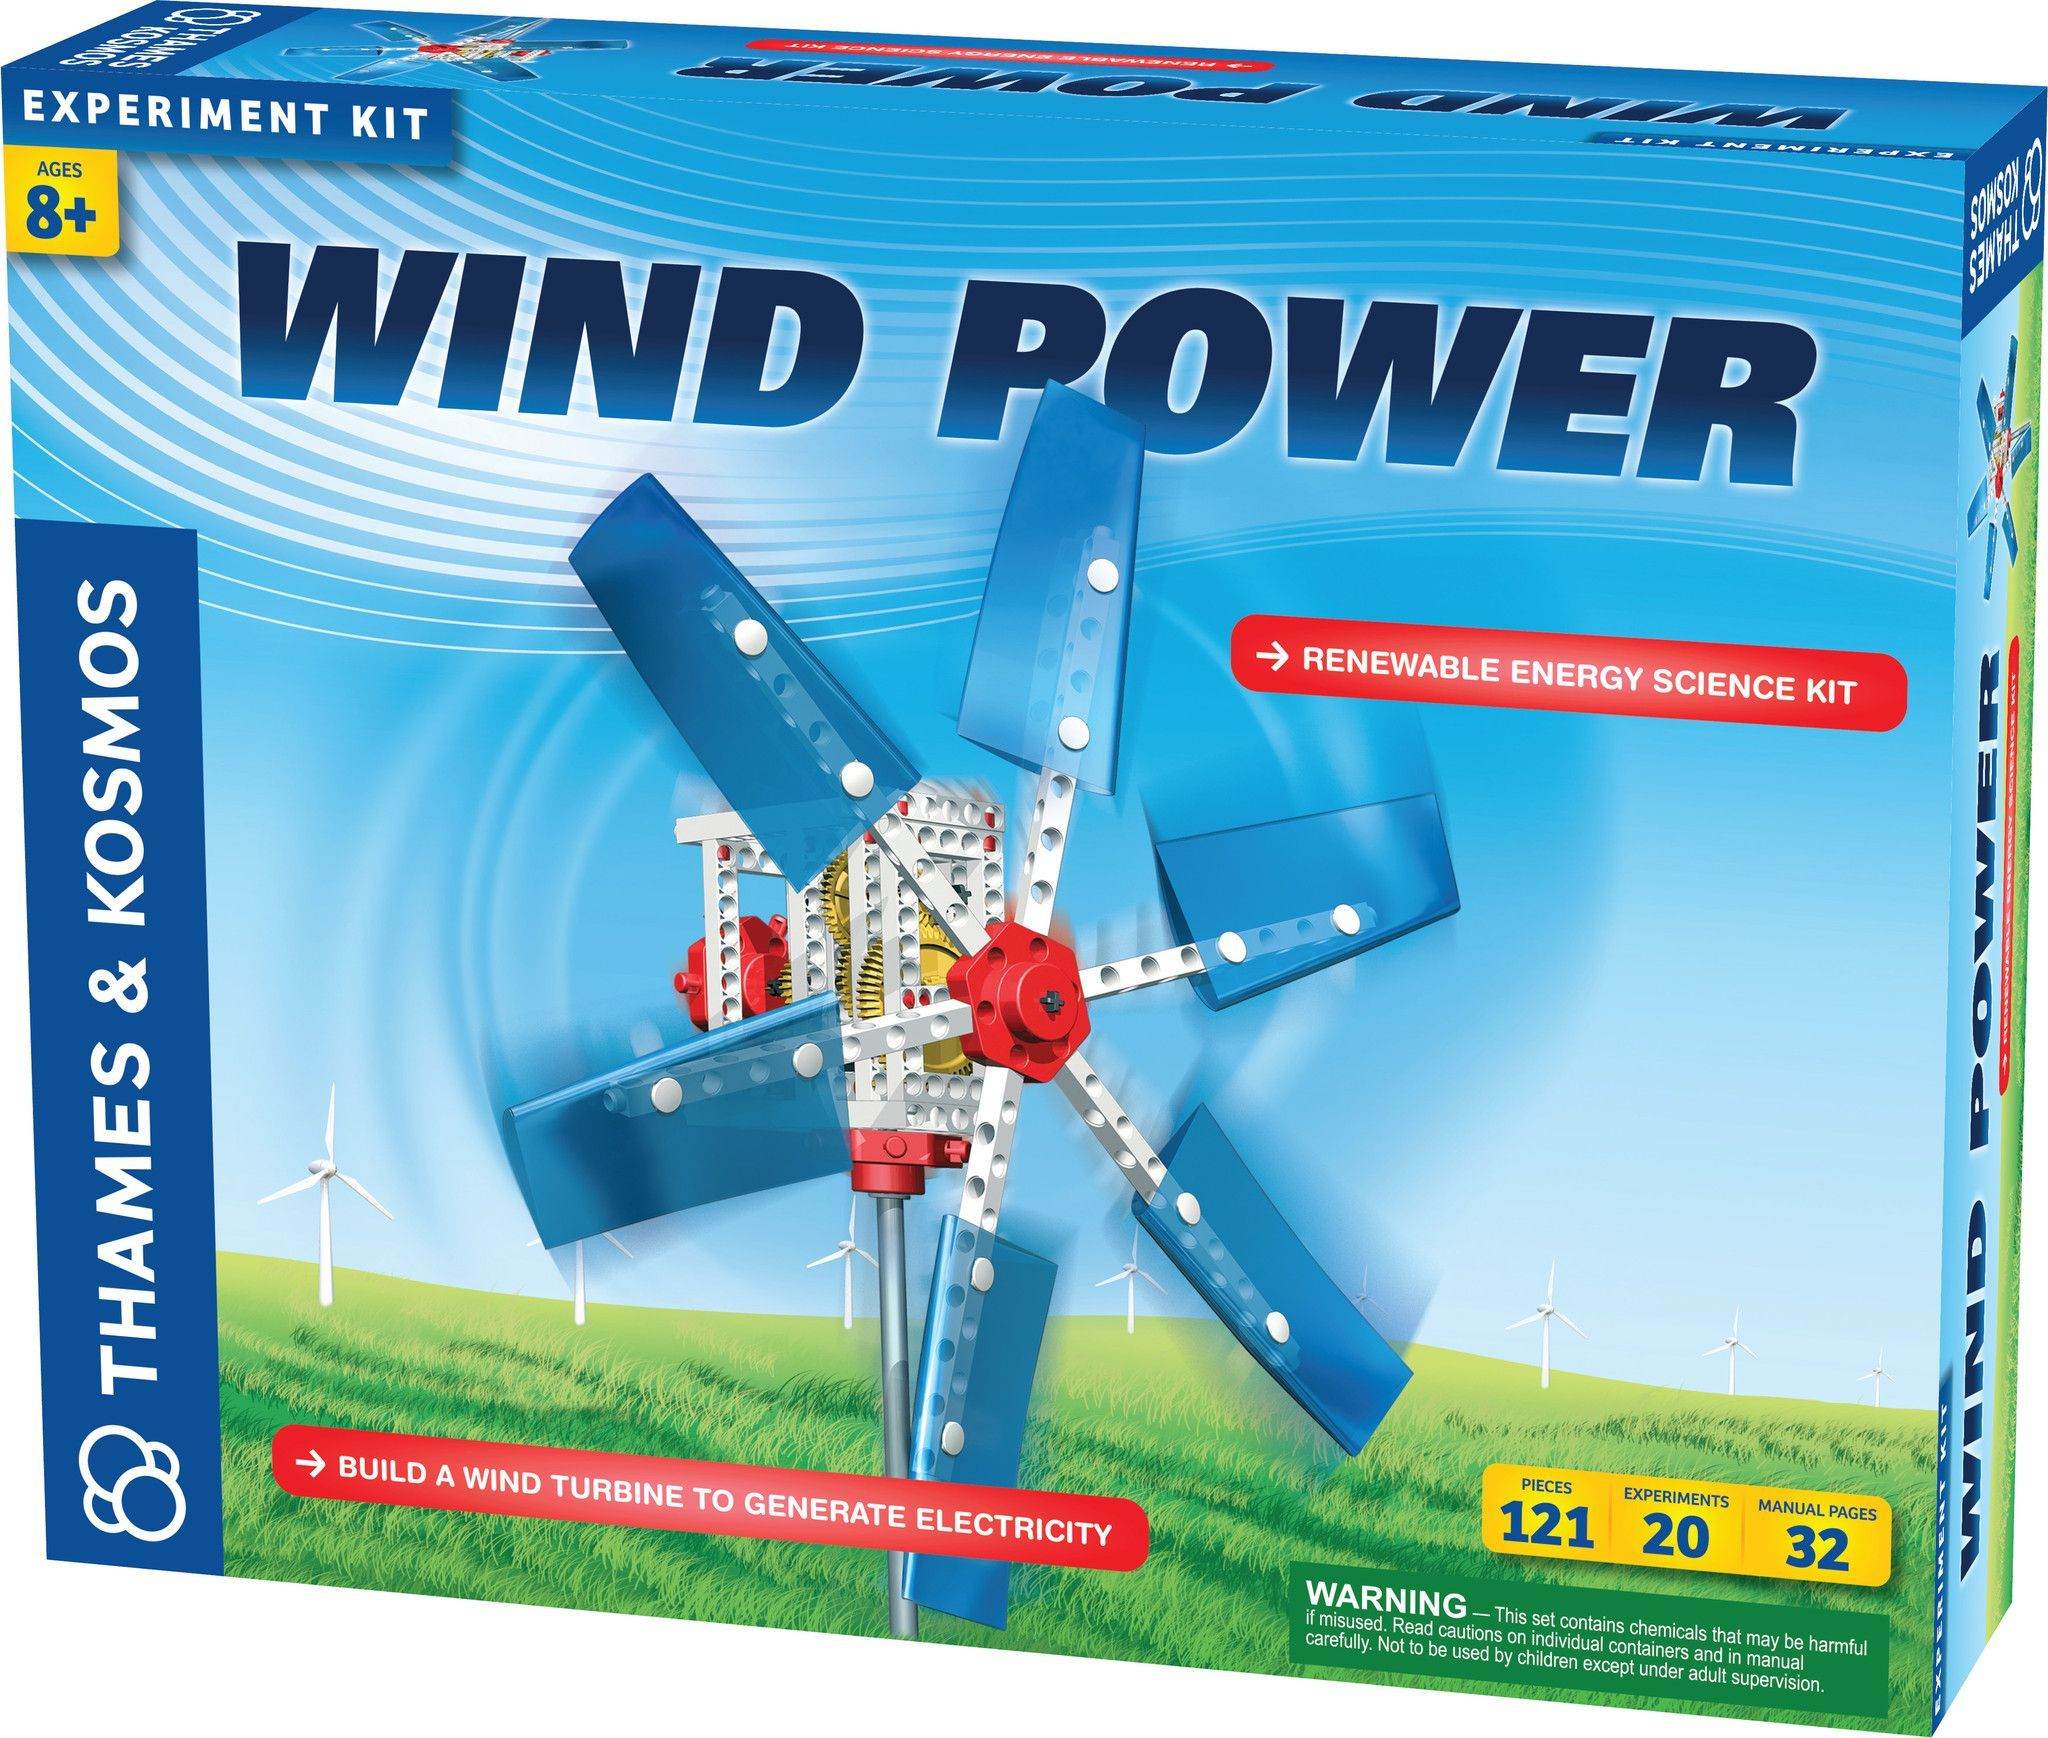 Renewable Energy Science Kit Build a working wind turbine